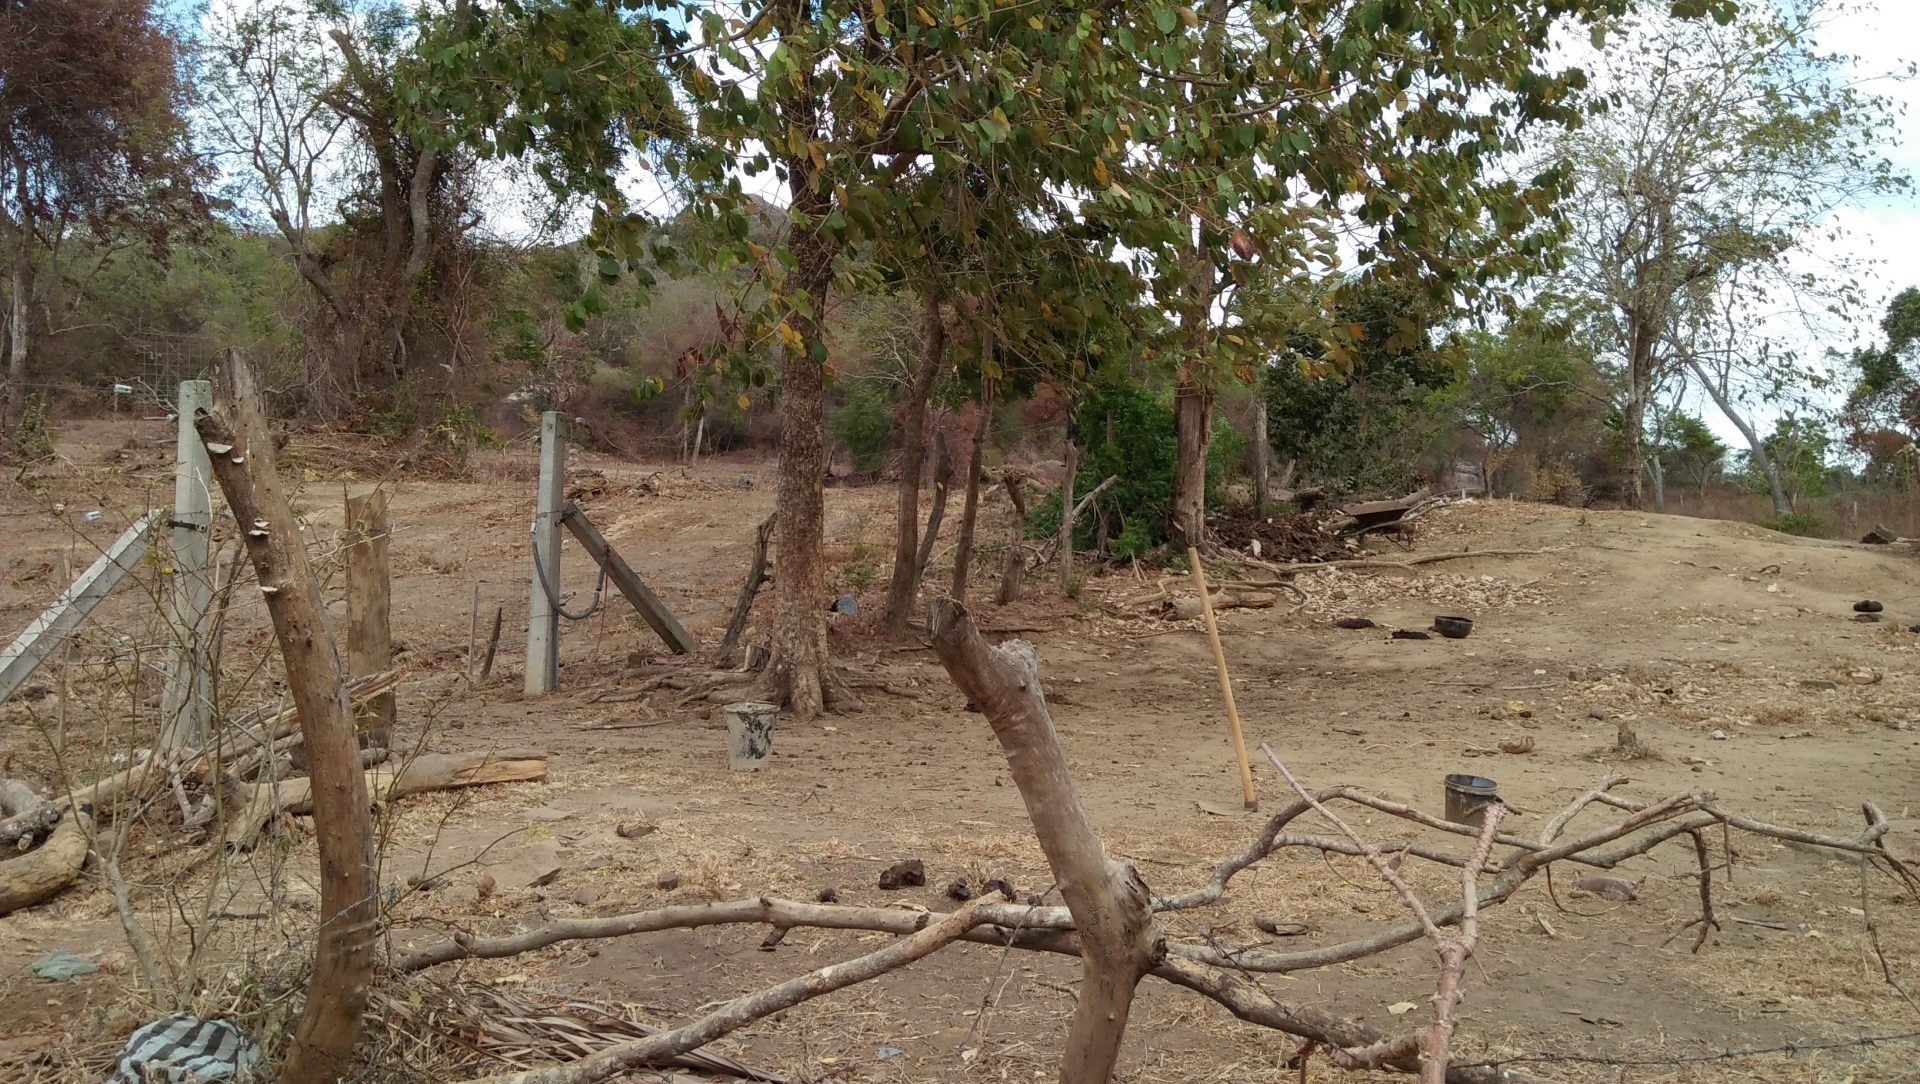 Ehetuwewa Illegal Forest Clearing And The Subsequent Erection Of An Electric Fence